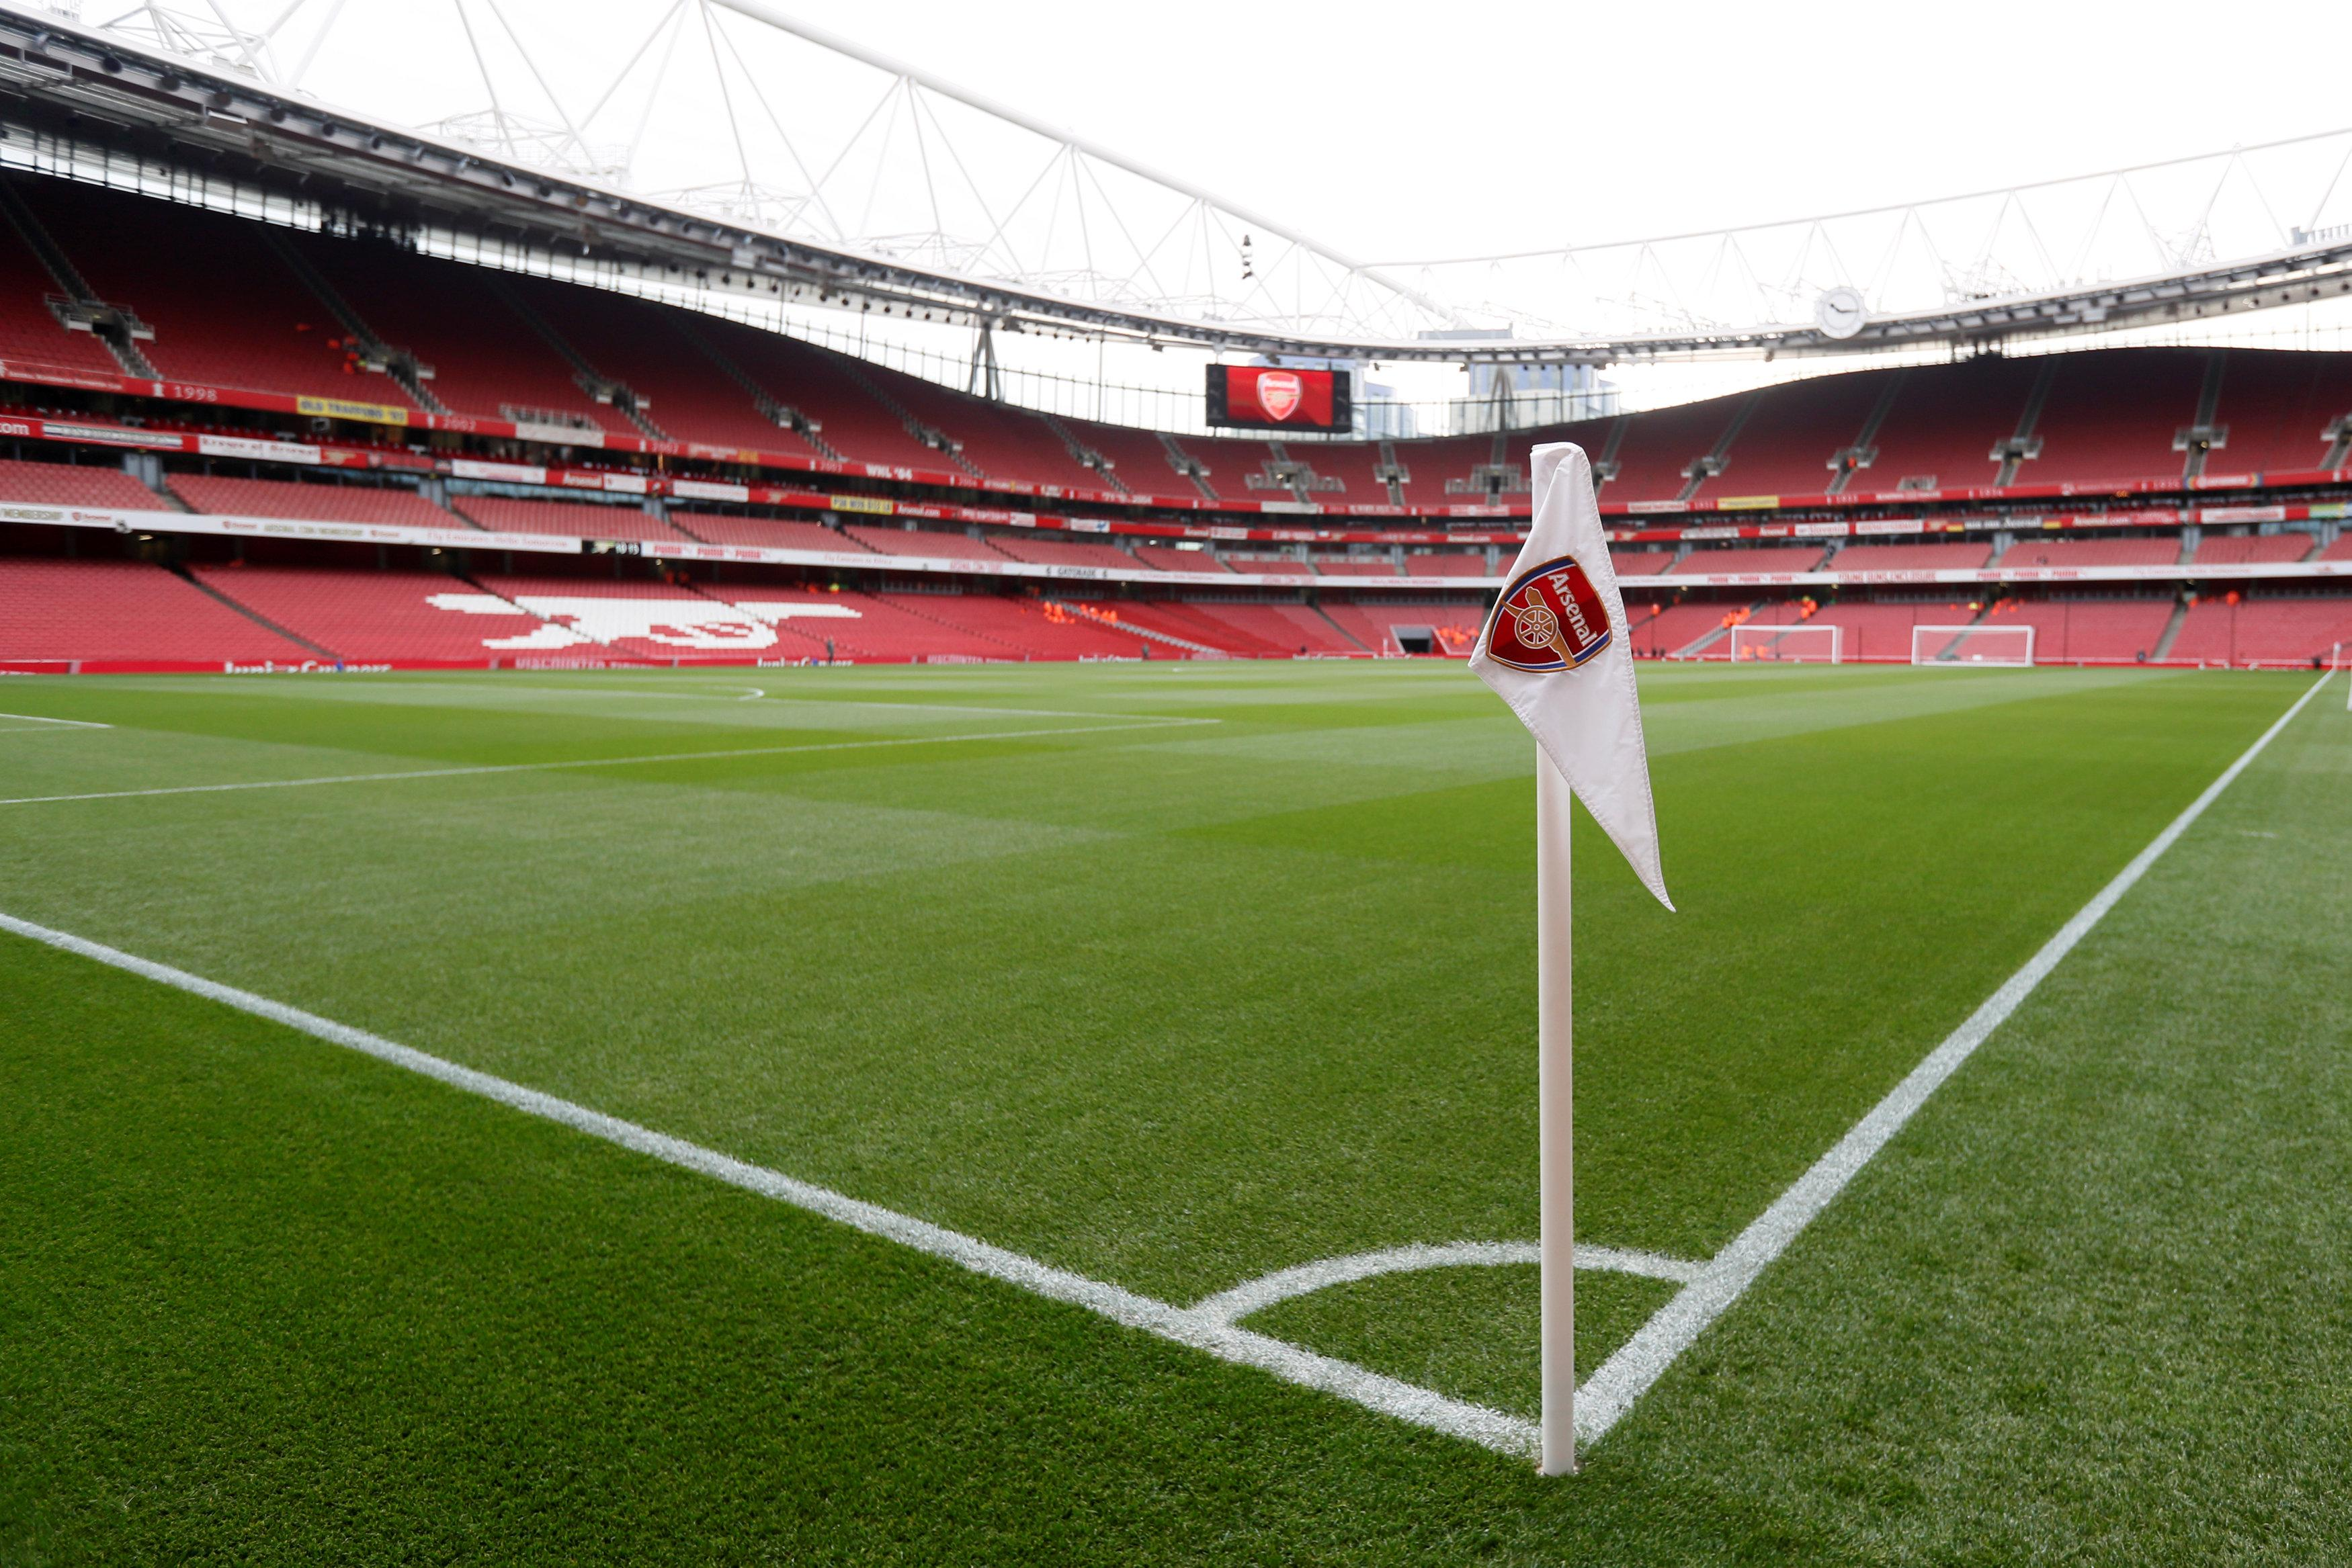 The Emirates Football The Emirates